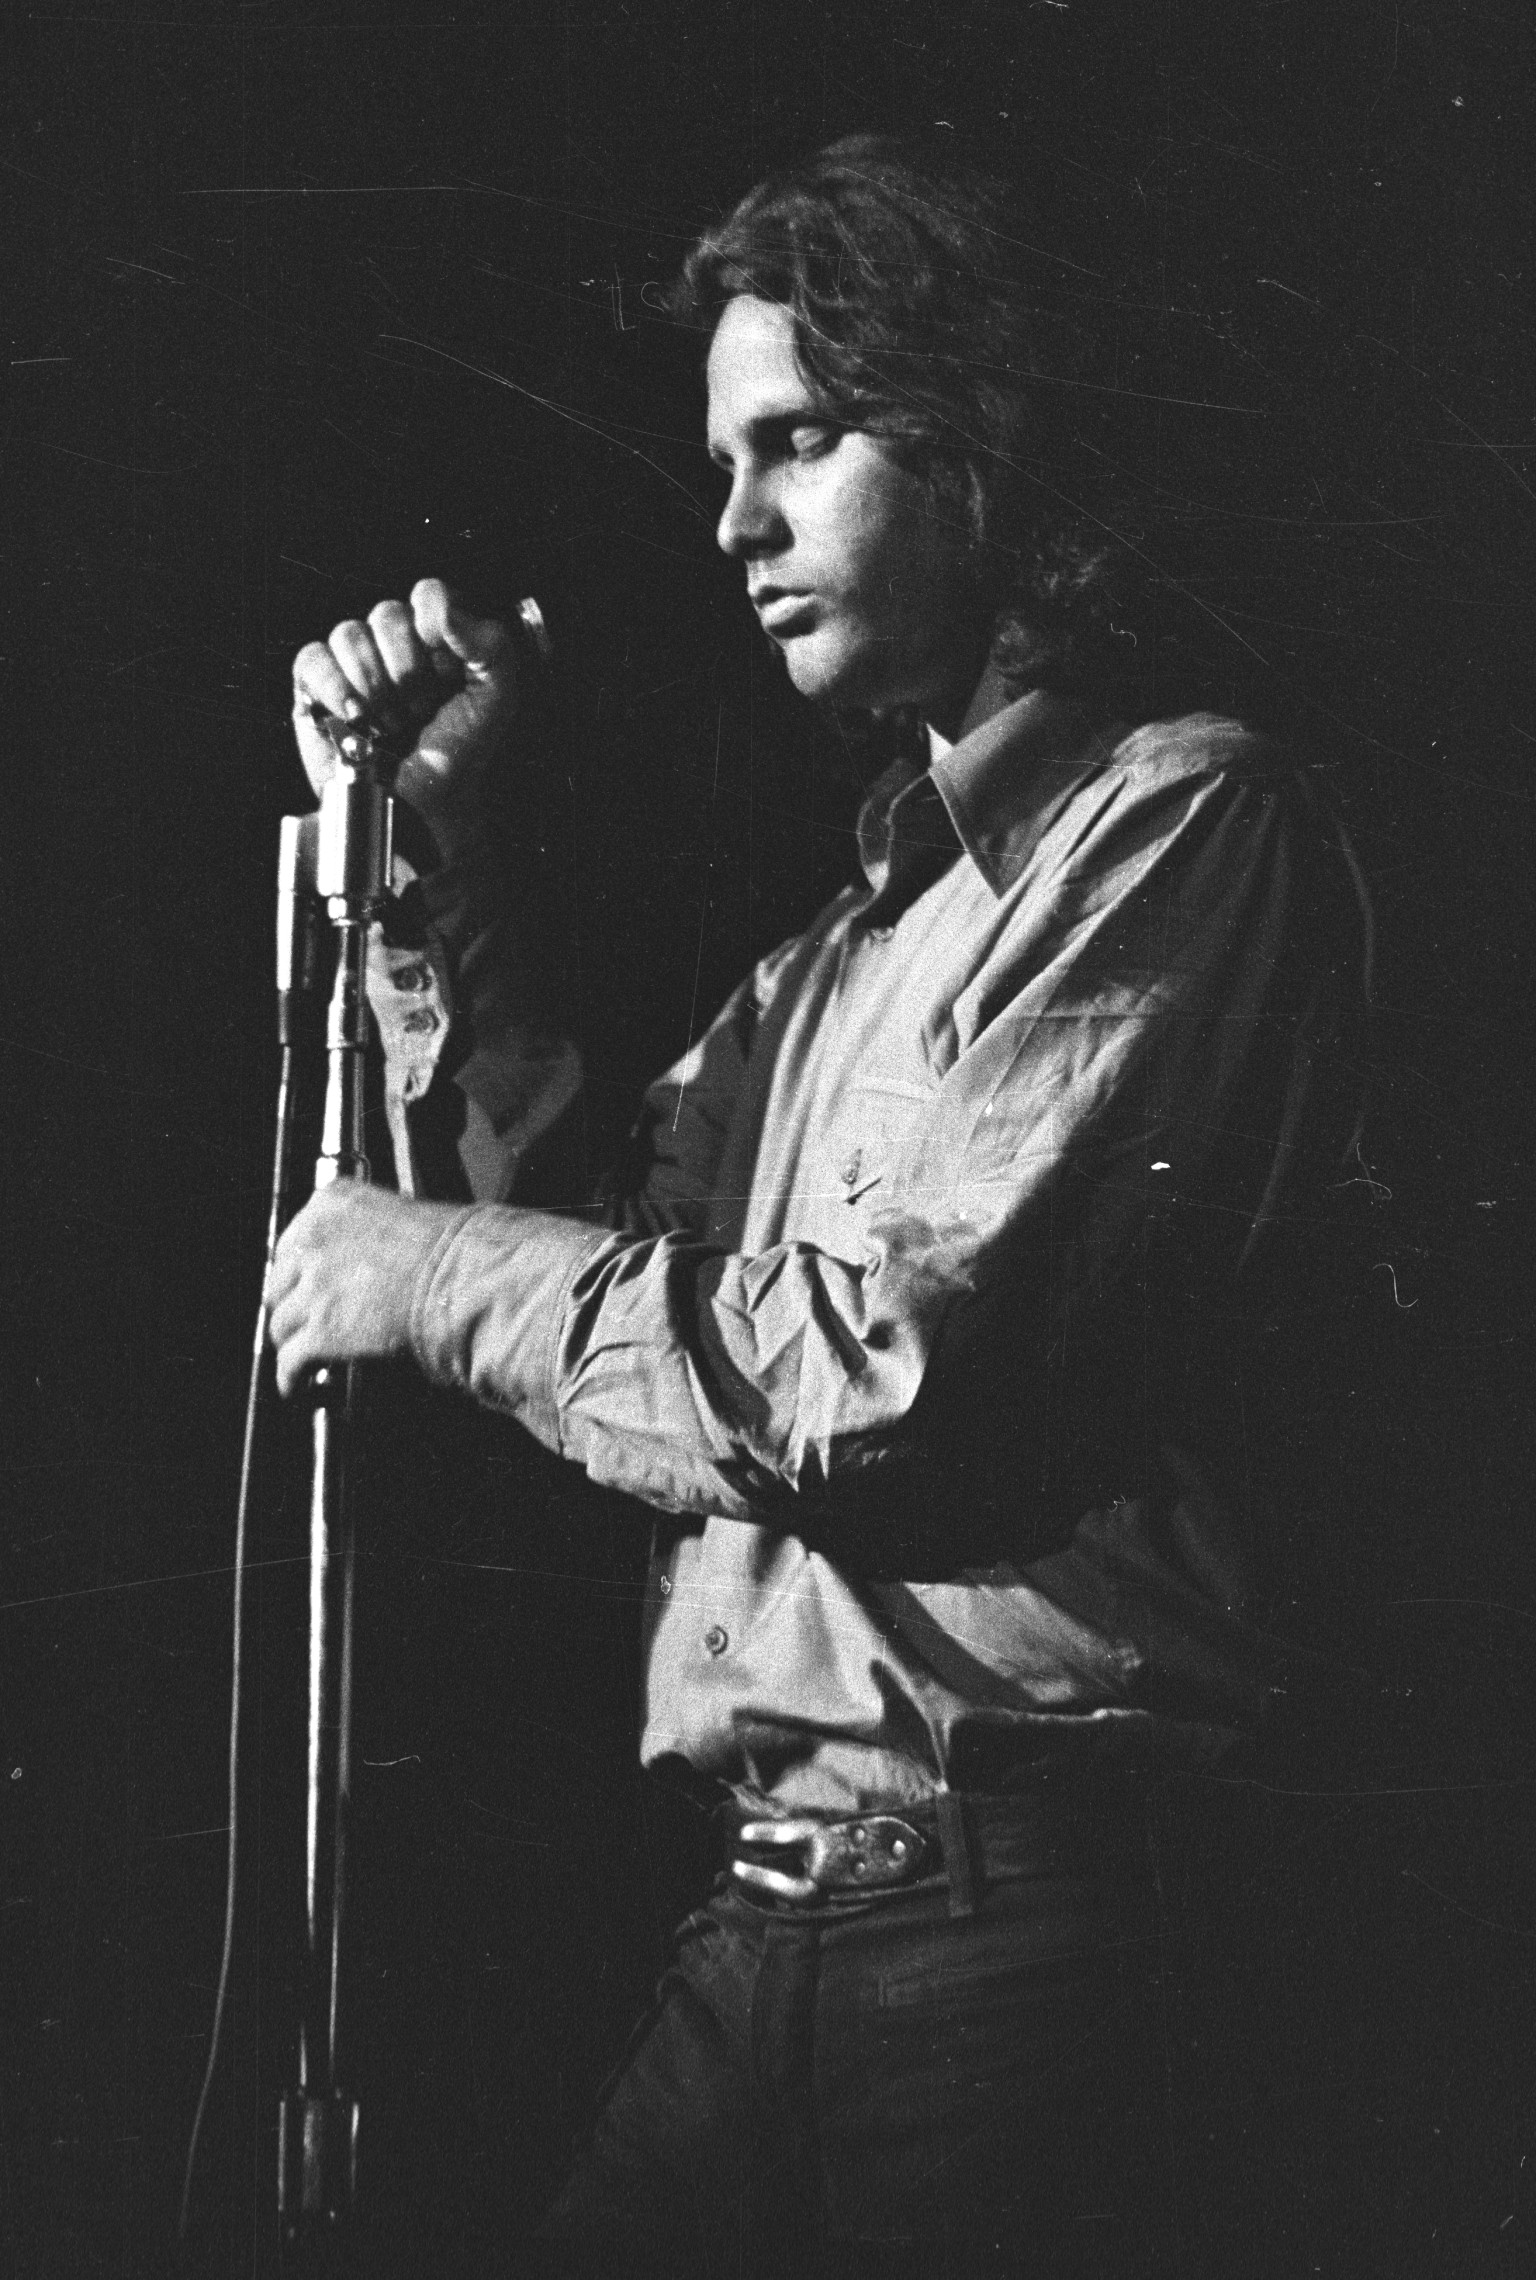 a research on jim morrison the lead singer of the doors Jim morrison was a poet, filmmaker, songwriter, and the lead singer of the doors  jim morrison at the fillmore i was doing time in the universal mind.